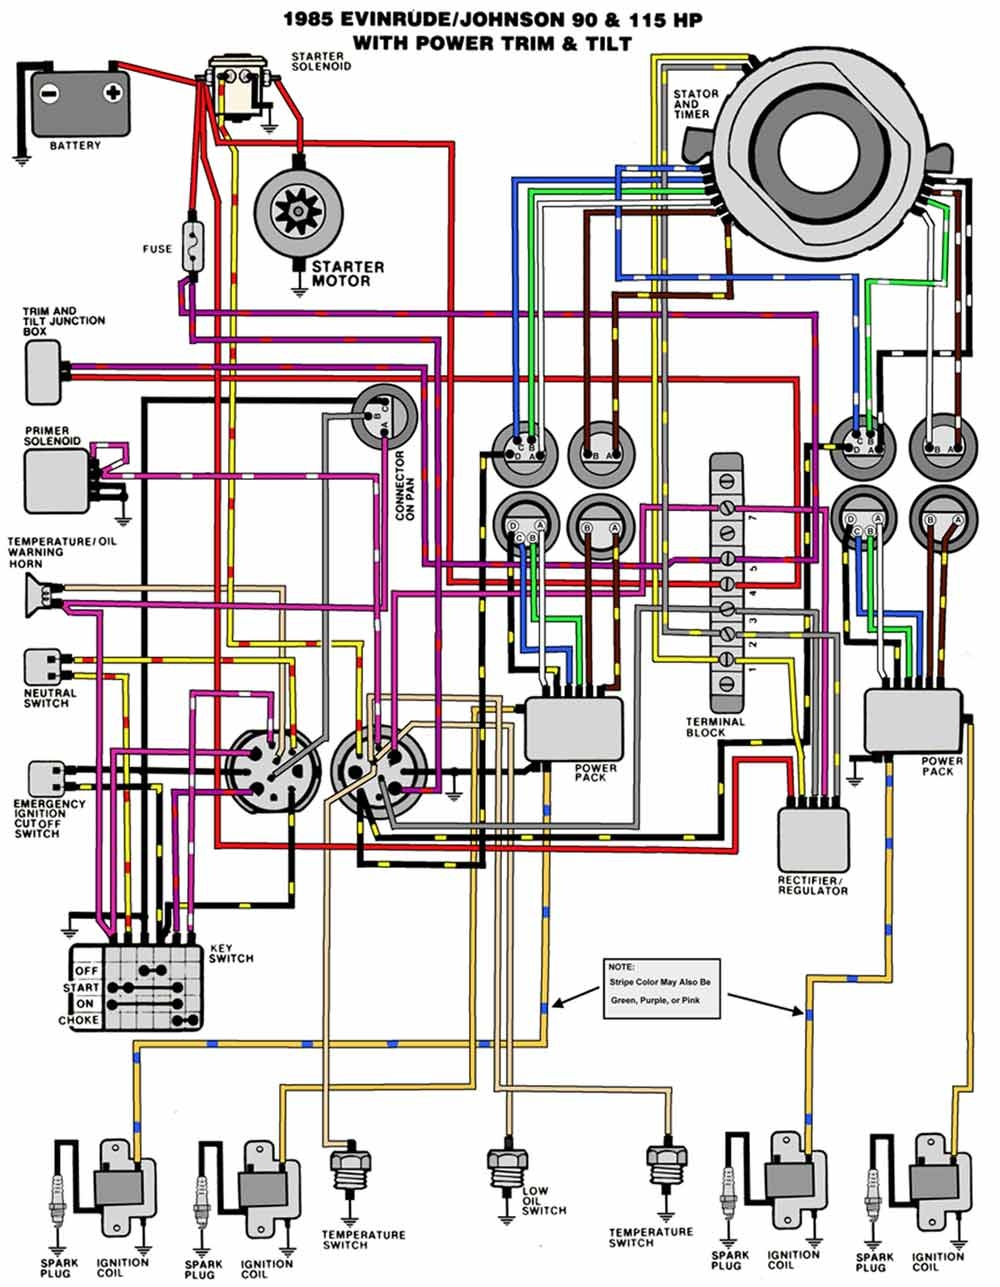 wiring diagram for mercury ignition switch mercury outboard ignition switch wiring diagram | free ... 91 chevy truck 1500 wire diagram for the ignition switch